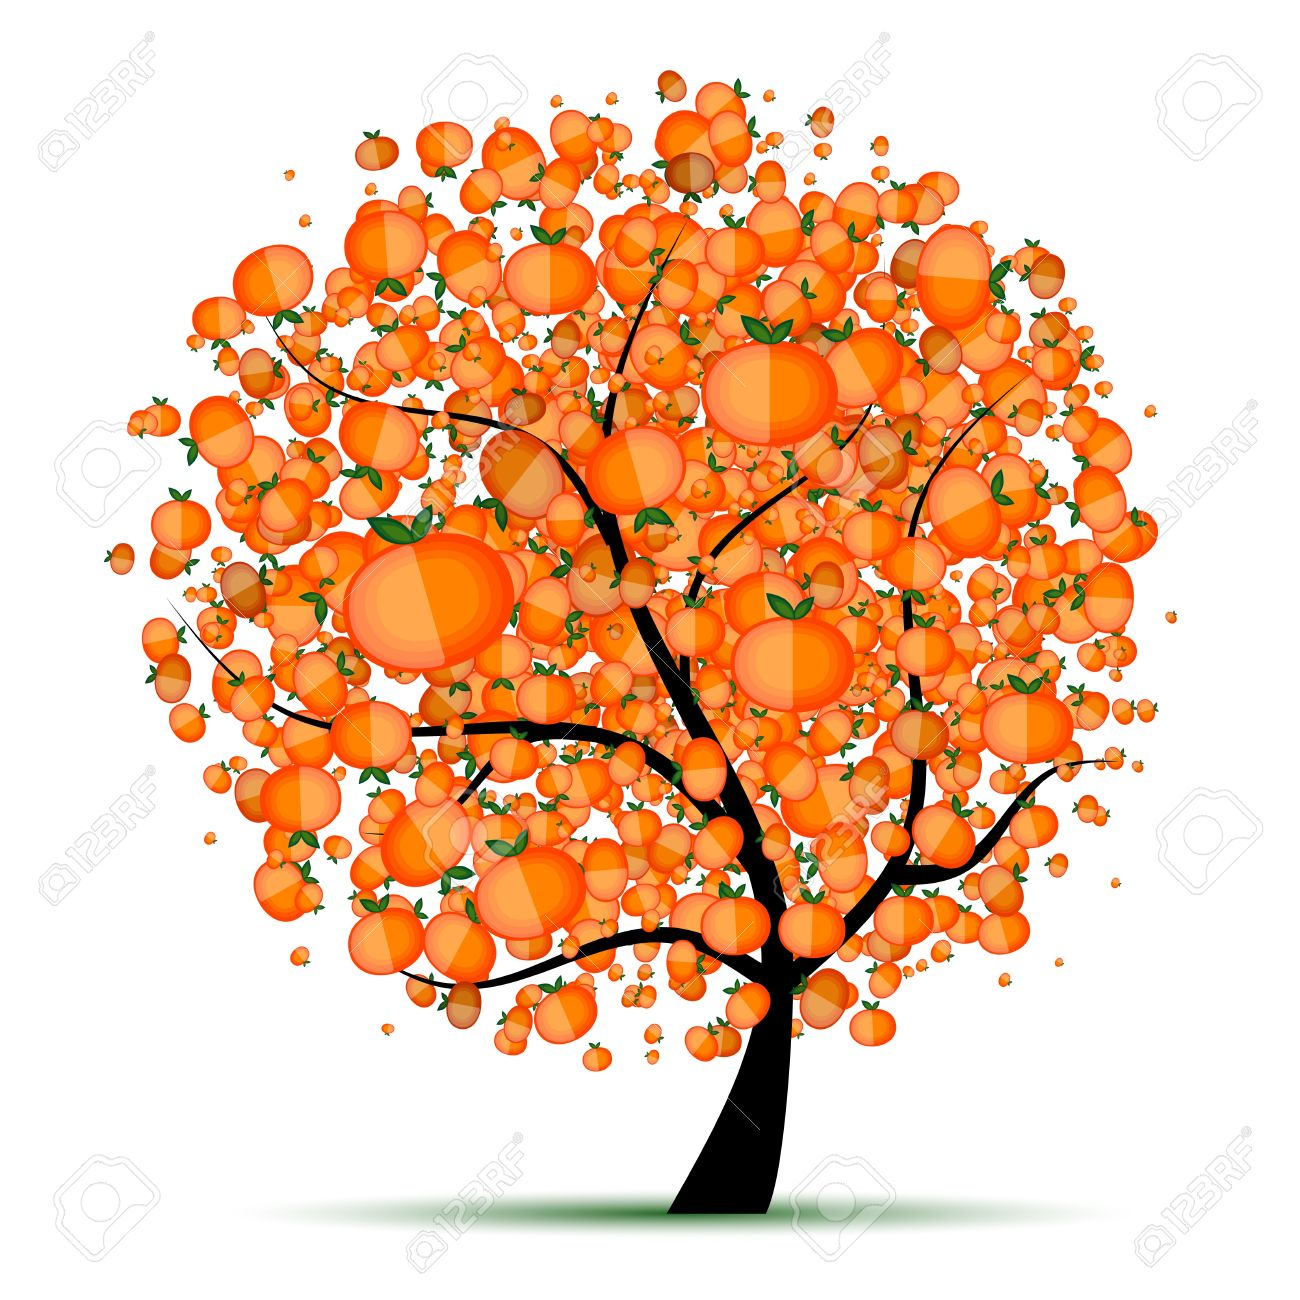 522 Mandarin Tree Stock Vector Illustration And Royalty Free.